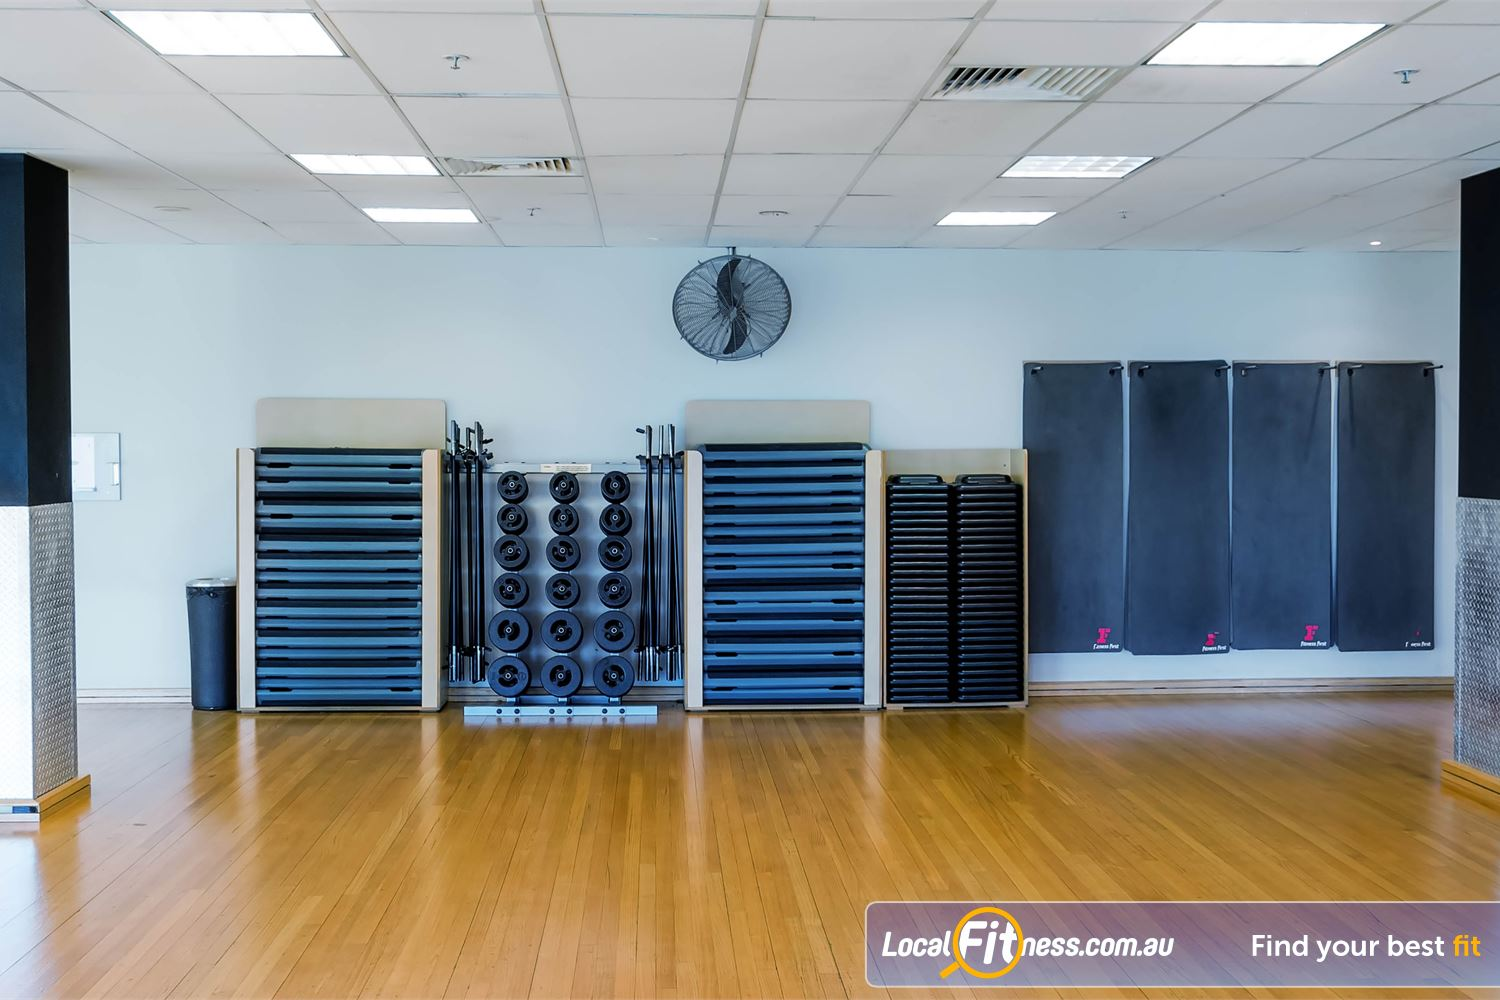 Fitness First Platinum Kings Cross Near Woolloomooloo Our group fitness studio is fully equipped for a full range of Les Mills classes.